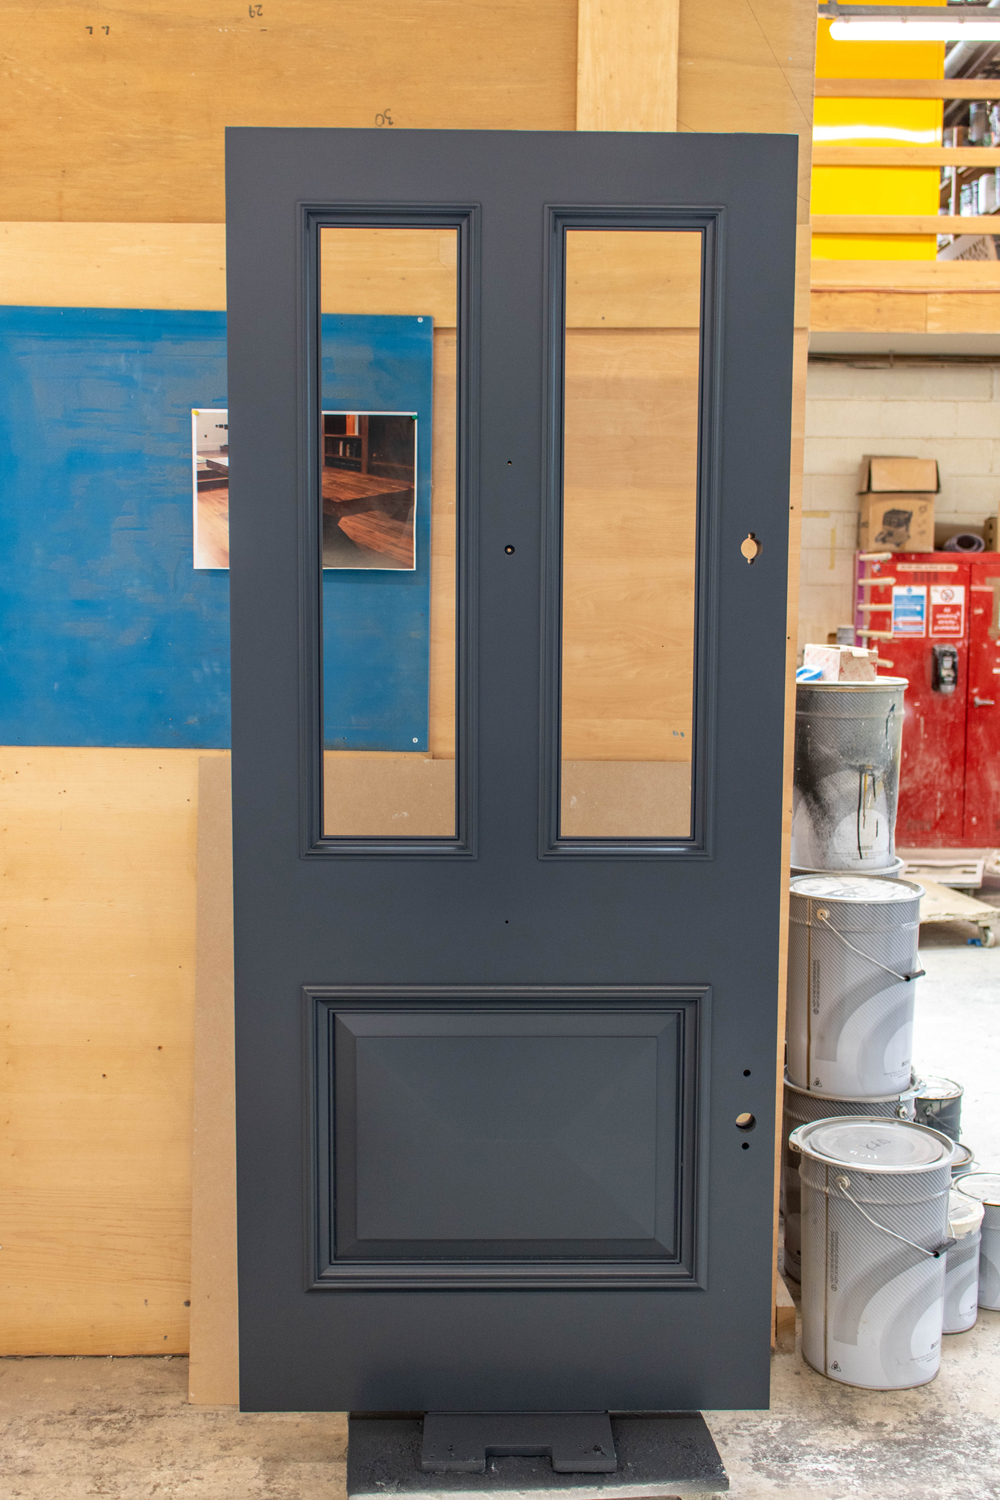 grey door in k&d joinery workshop